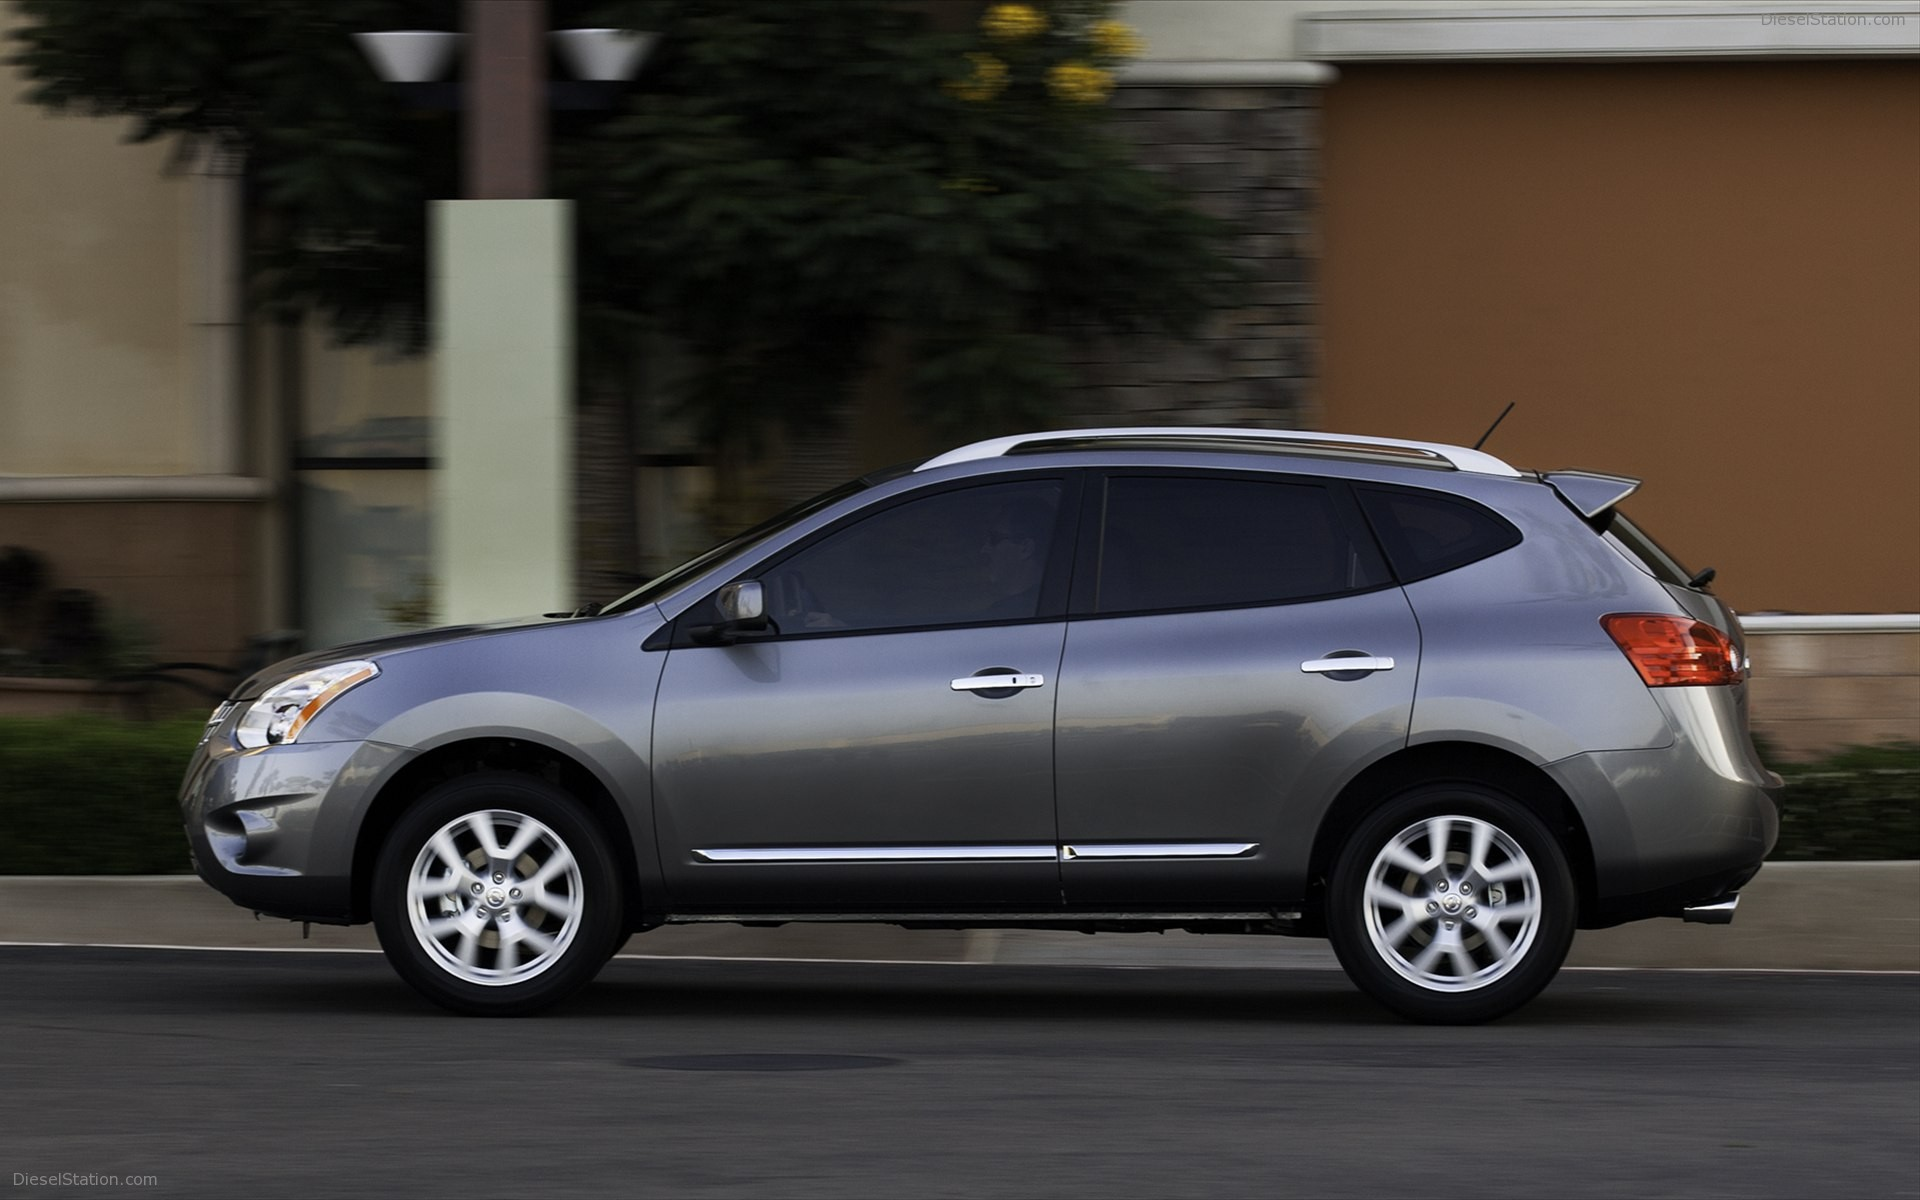 an added nissan style already rogue car articles guide the review en ride to smooth